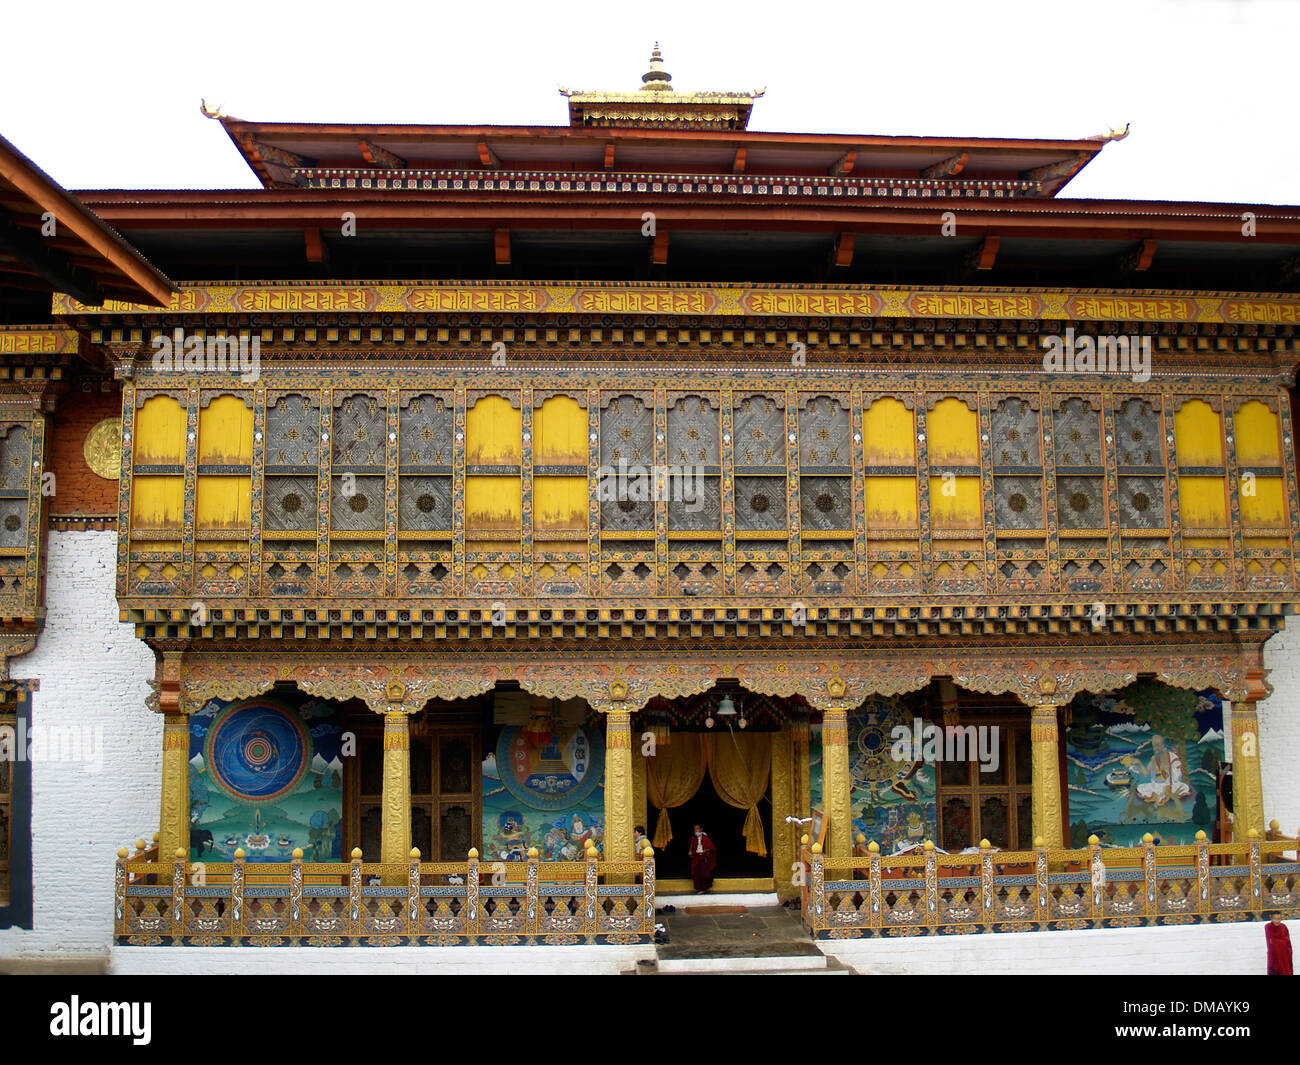 Interior building of the Punakha Dzong,Bhutan - Stock Image